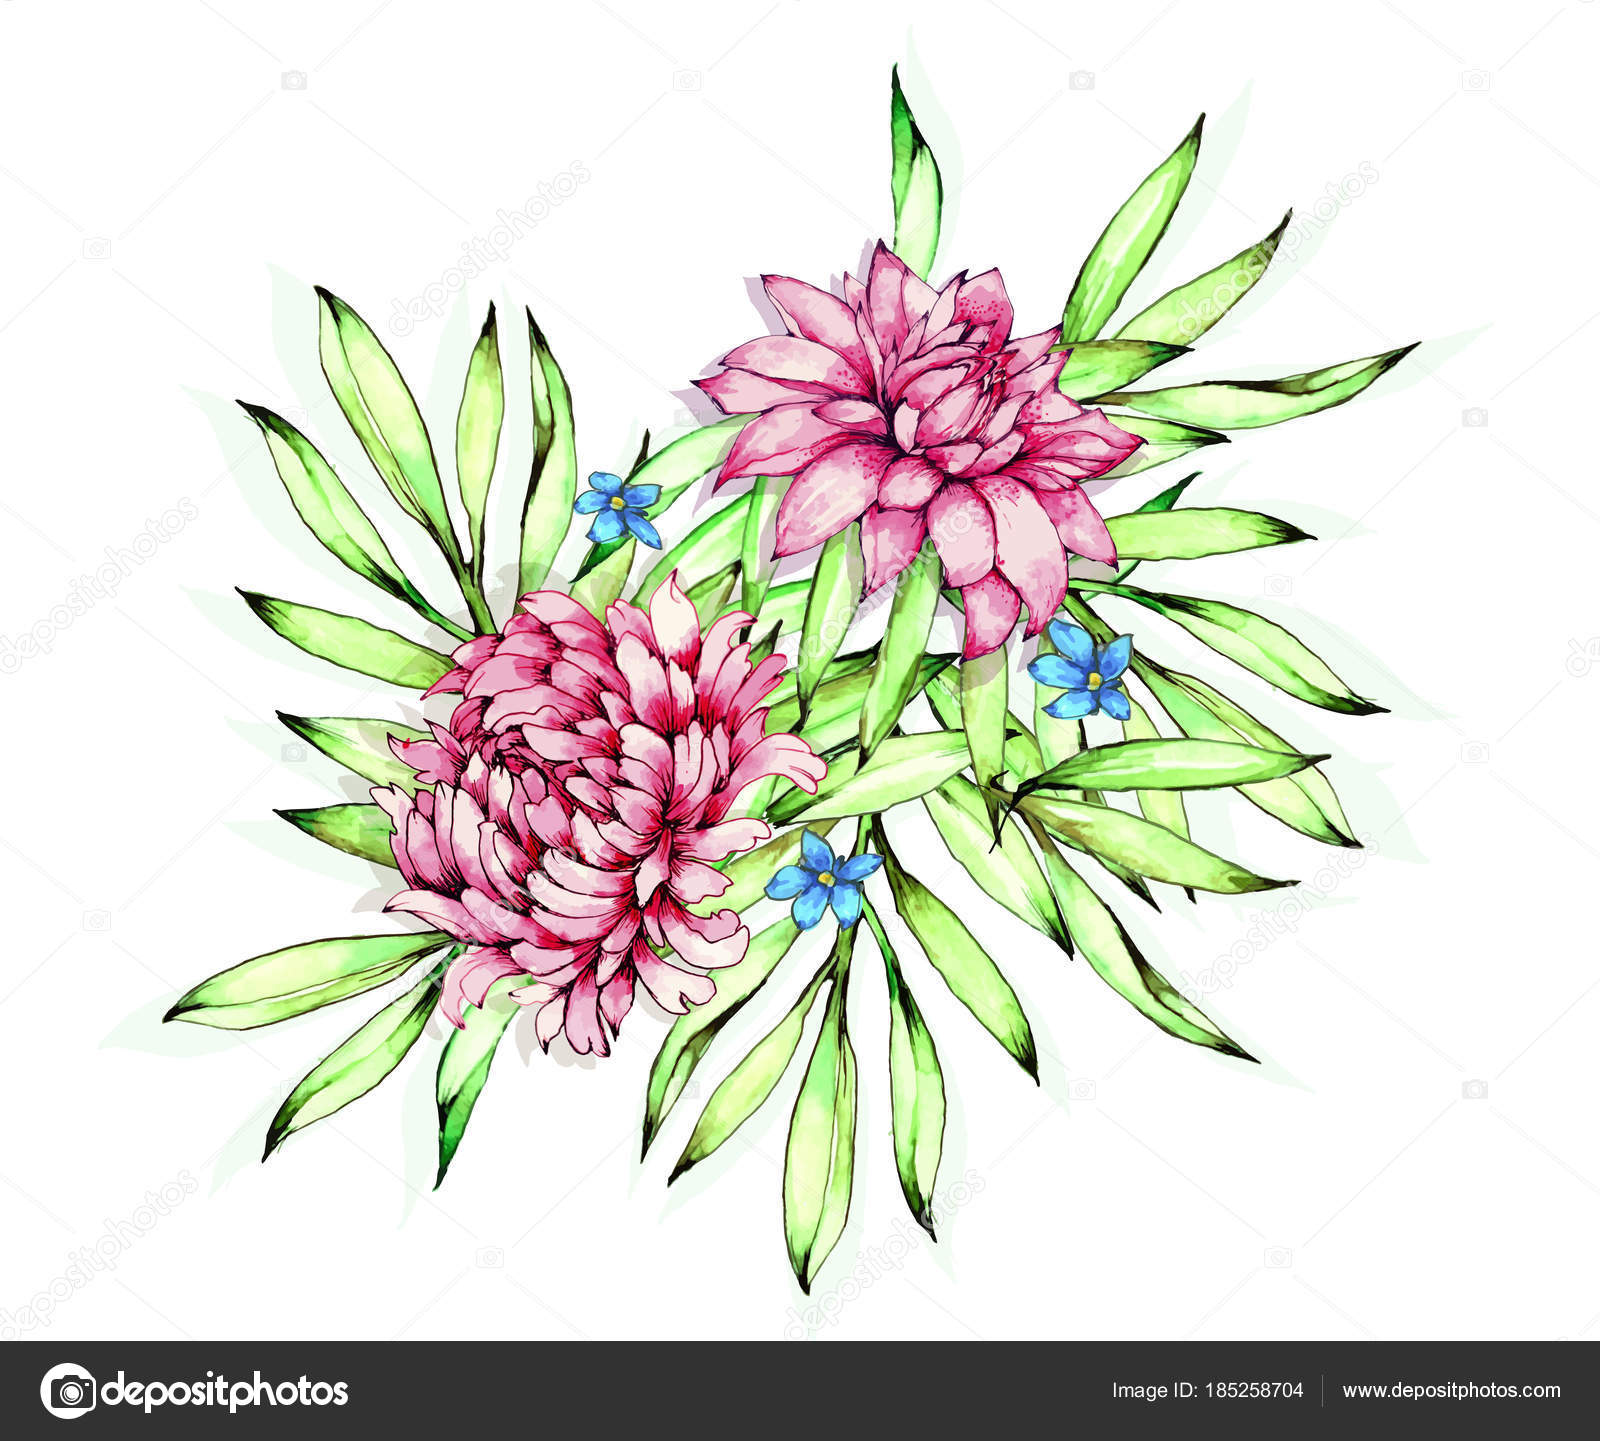 Colorful Flower Drawing Colorful Floral Collection Leaves Flowers Drawing Watercolor Stock Vector C Applea 185258704